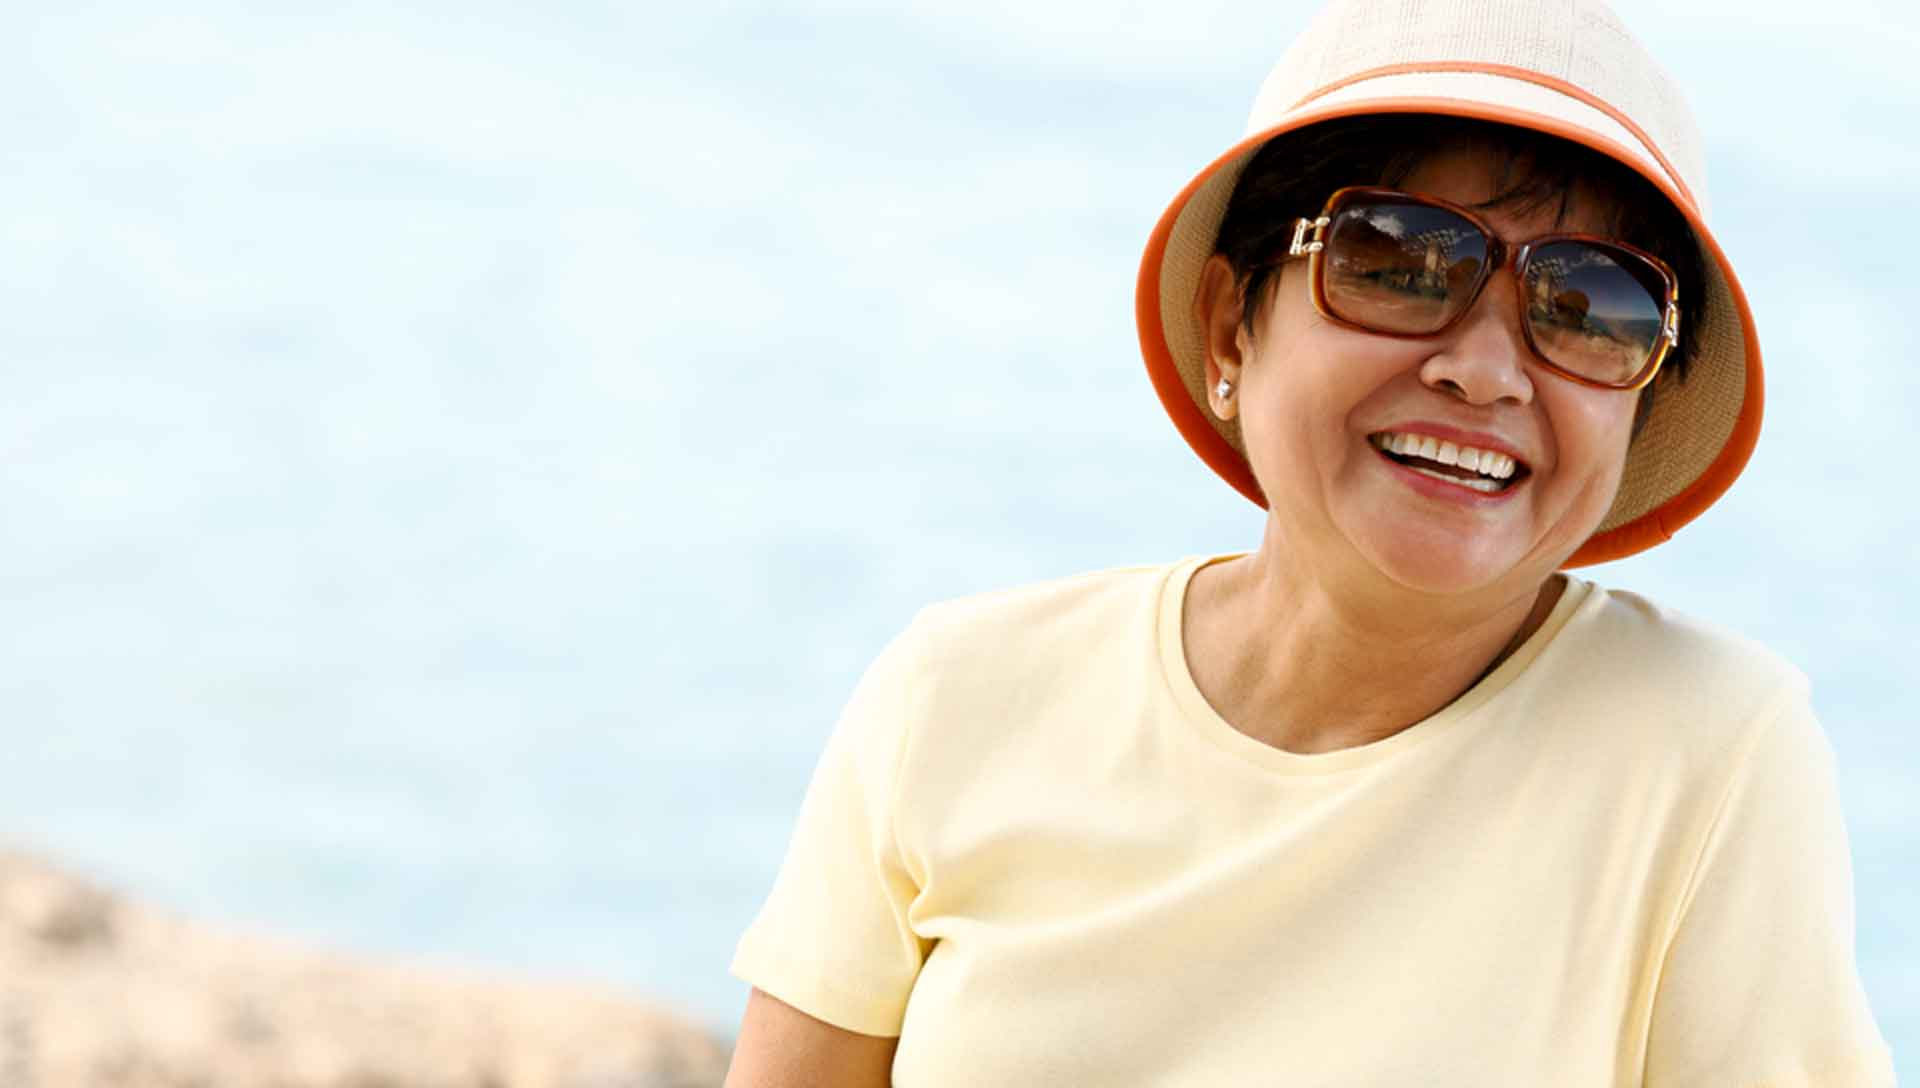 Photo of a woman in pink sun hat and sunglasses smiling